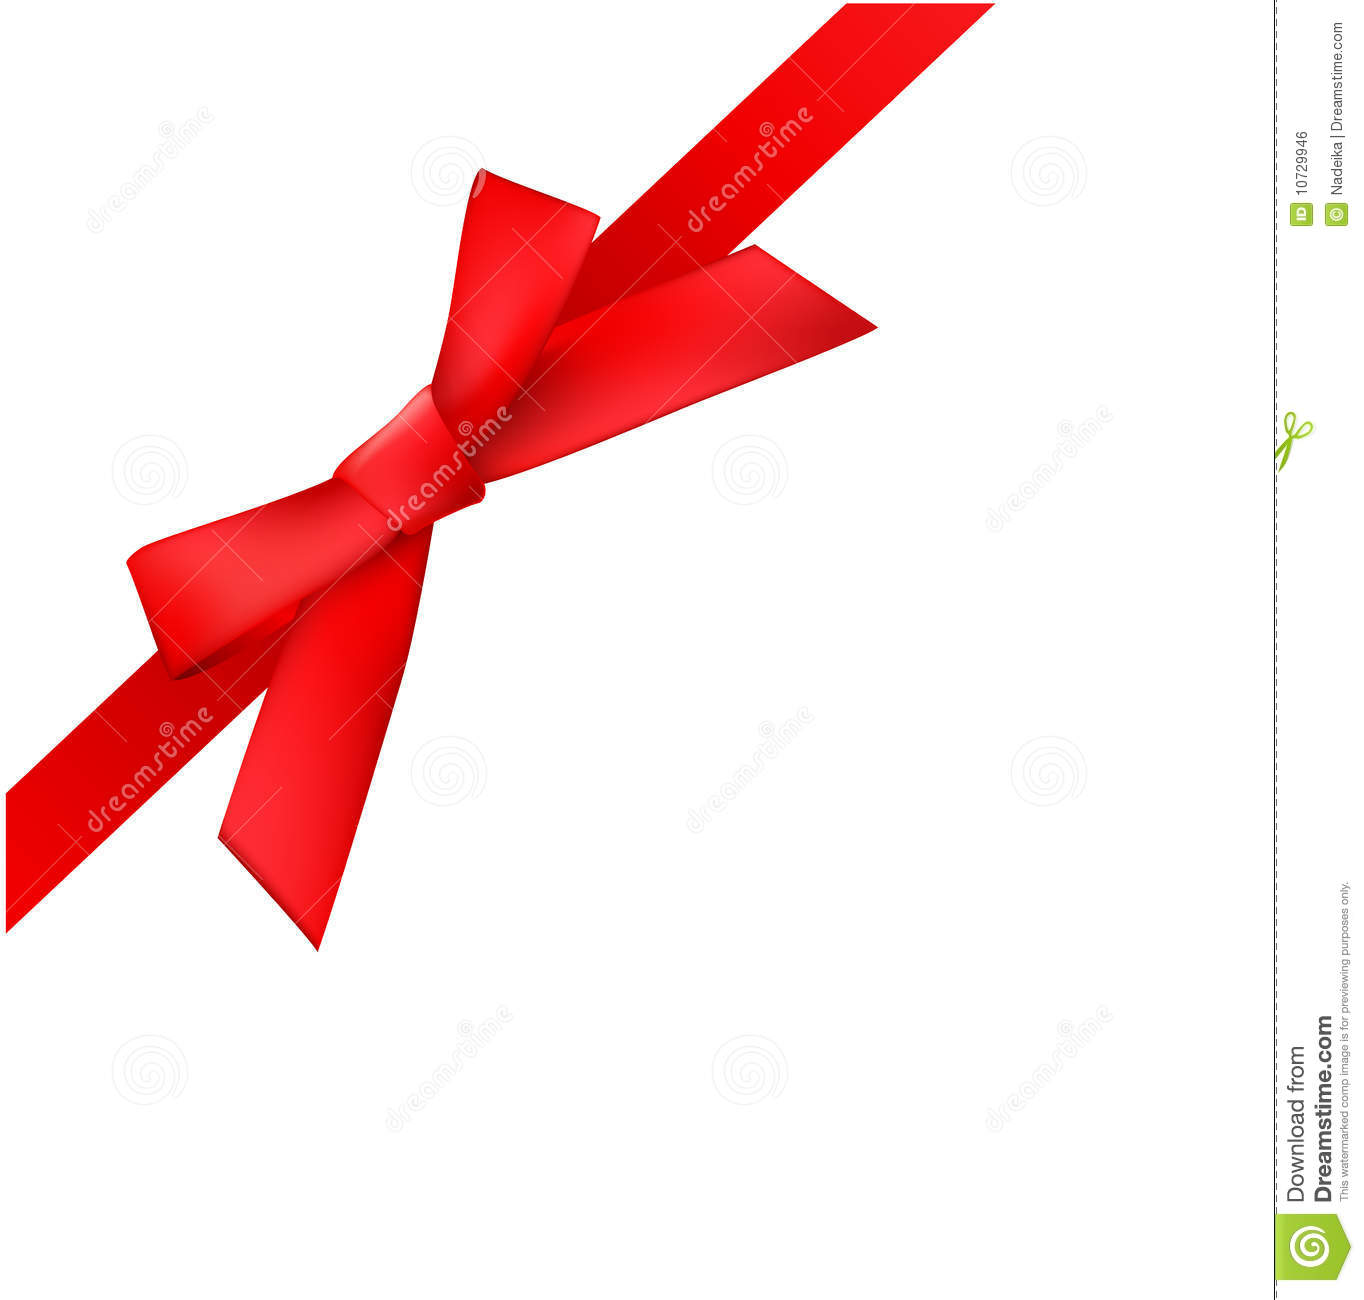 Royalty Free Stock Image Vector Bow Image10729946